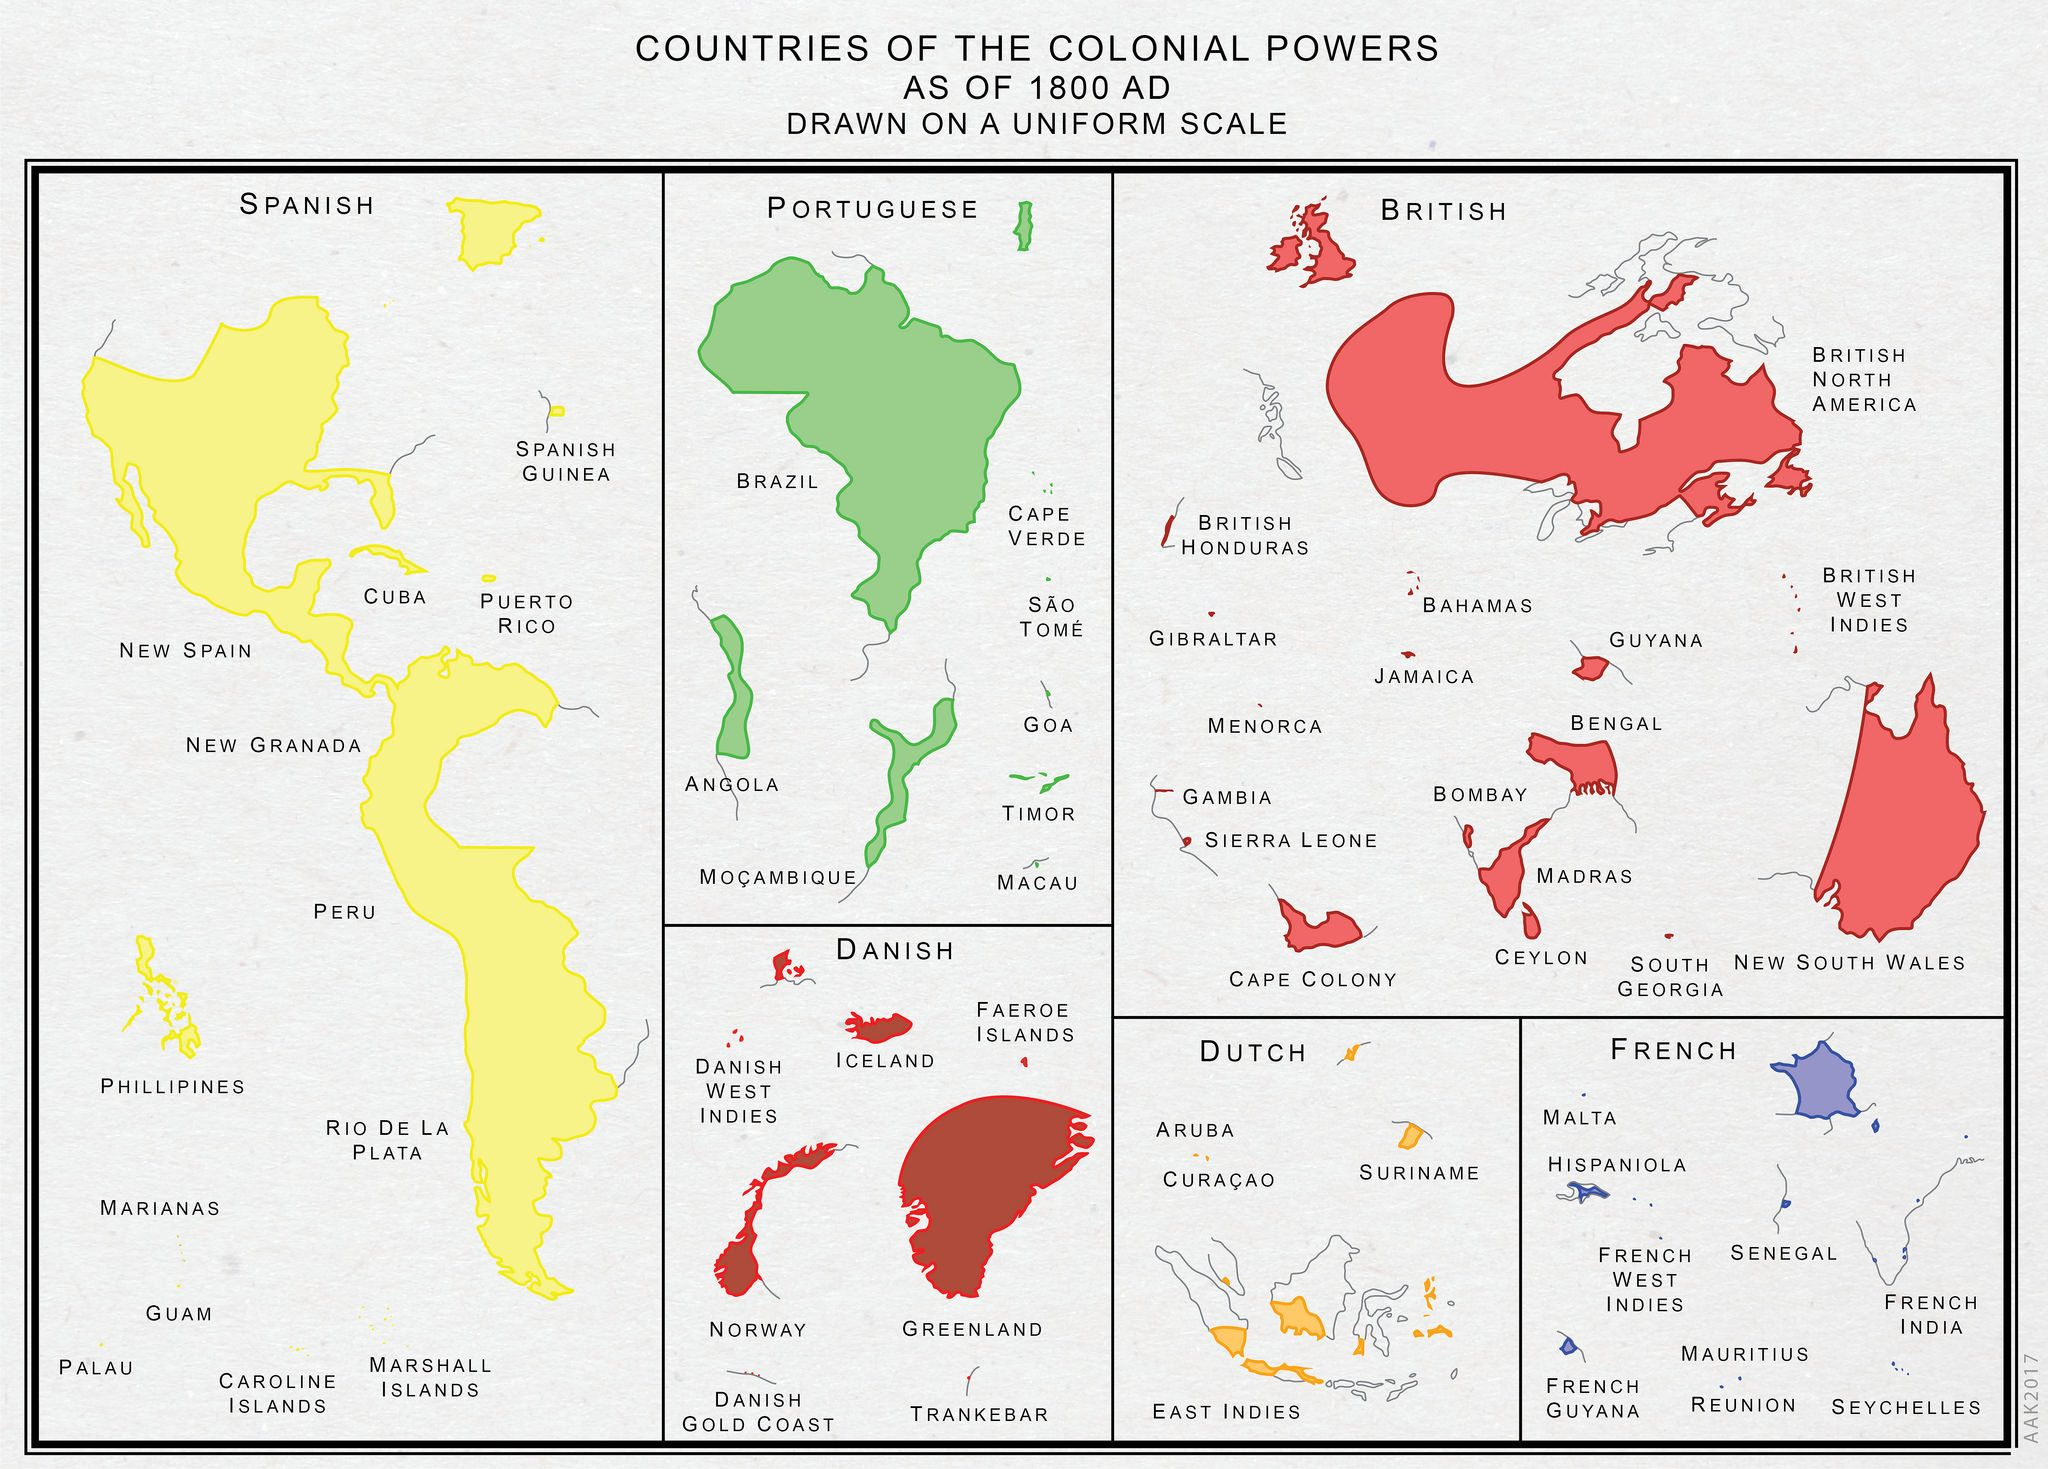 Major colonial empires drawn to scale (1800 AD) | Historical ...